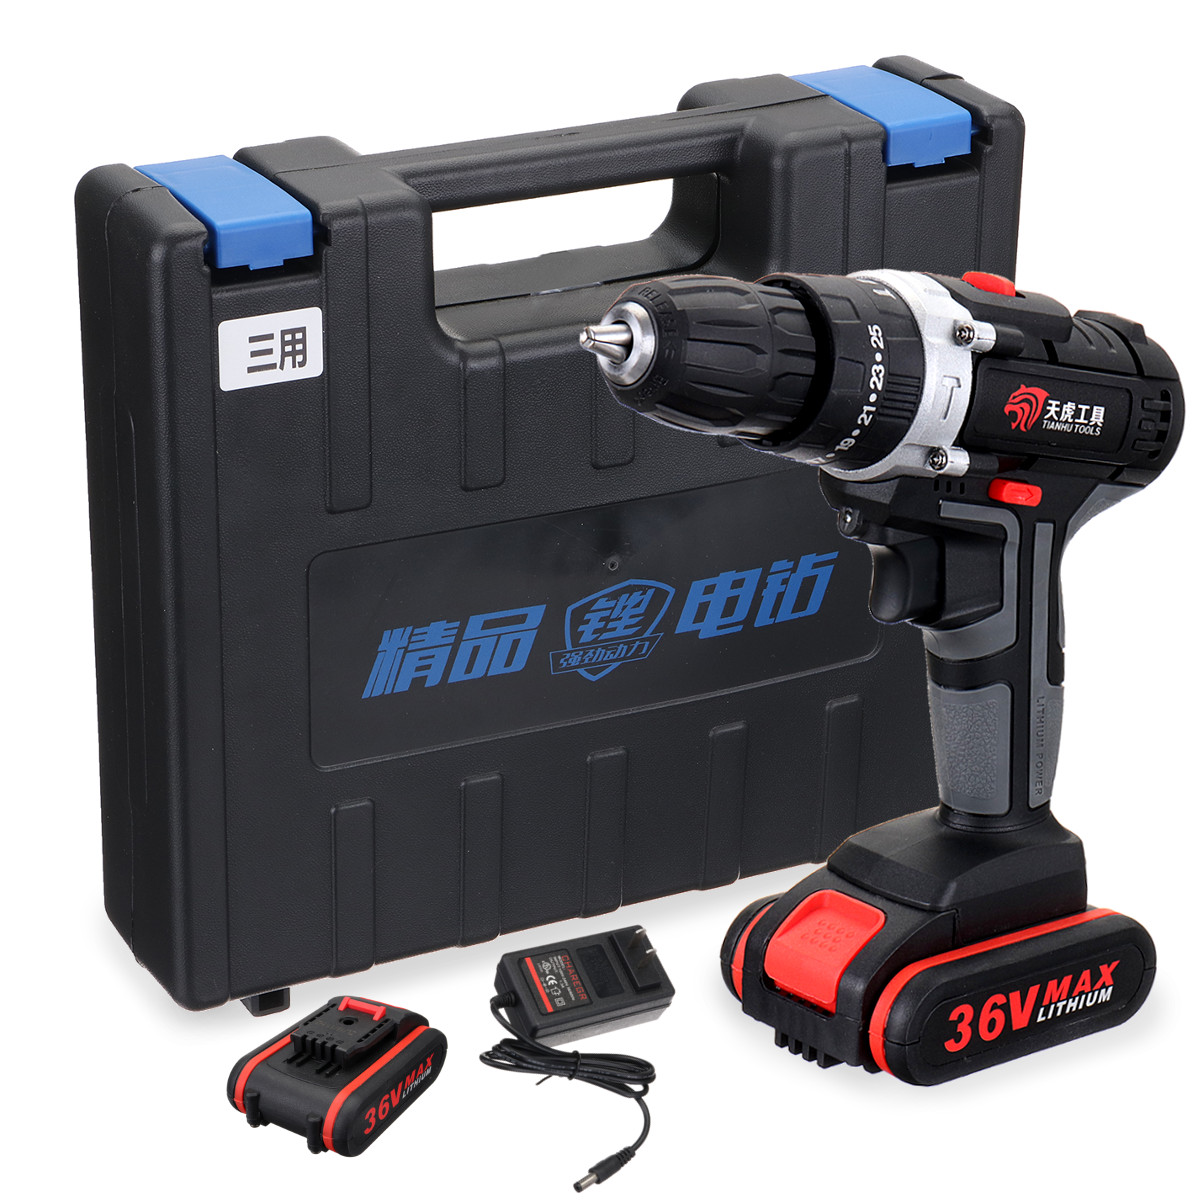 36V Impact Drill Electric Screwdriver Hand Electric Drill 2 Battery Cordless Drill Home Diy Power Tools & Light Tool Box